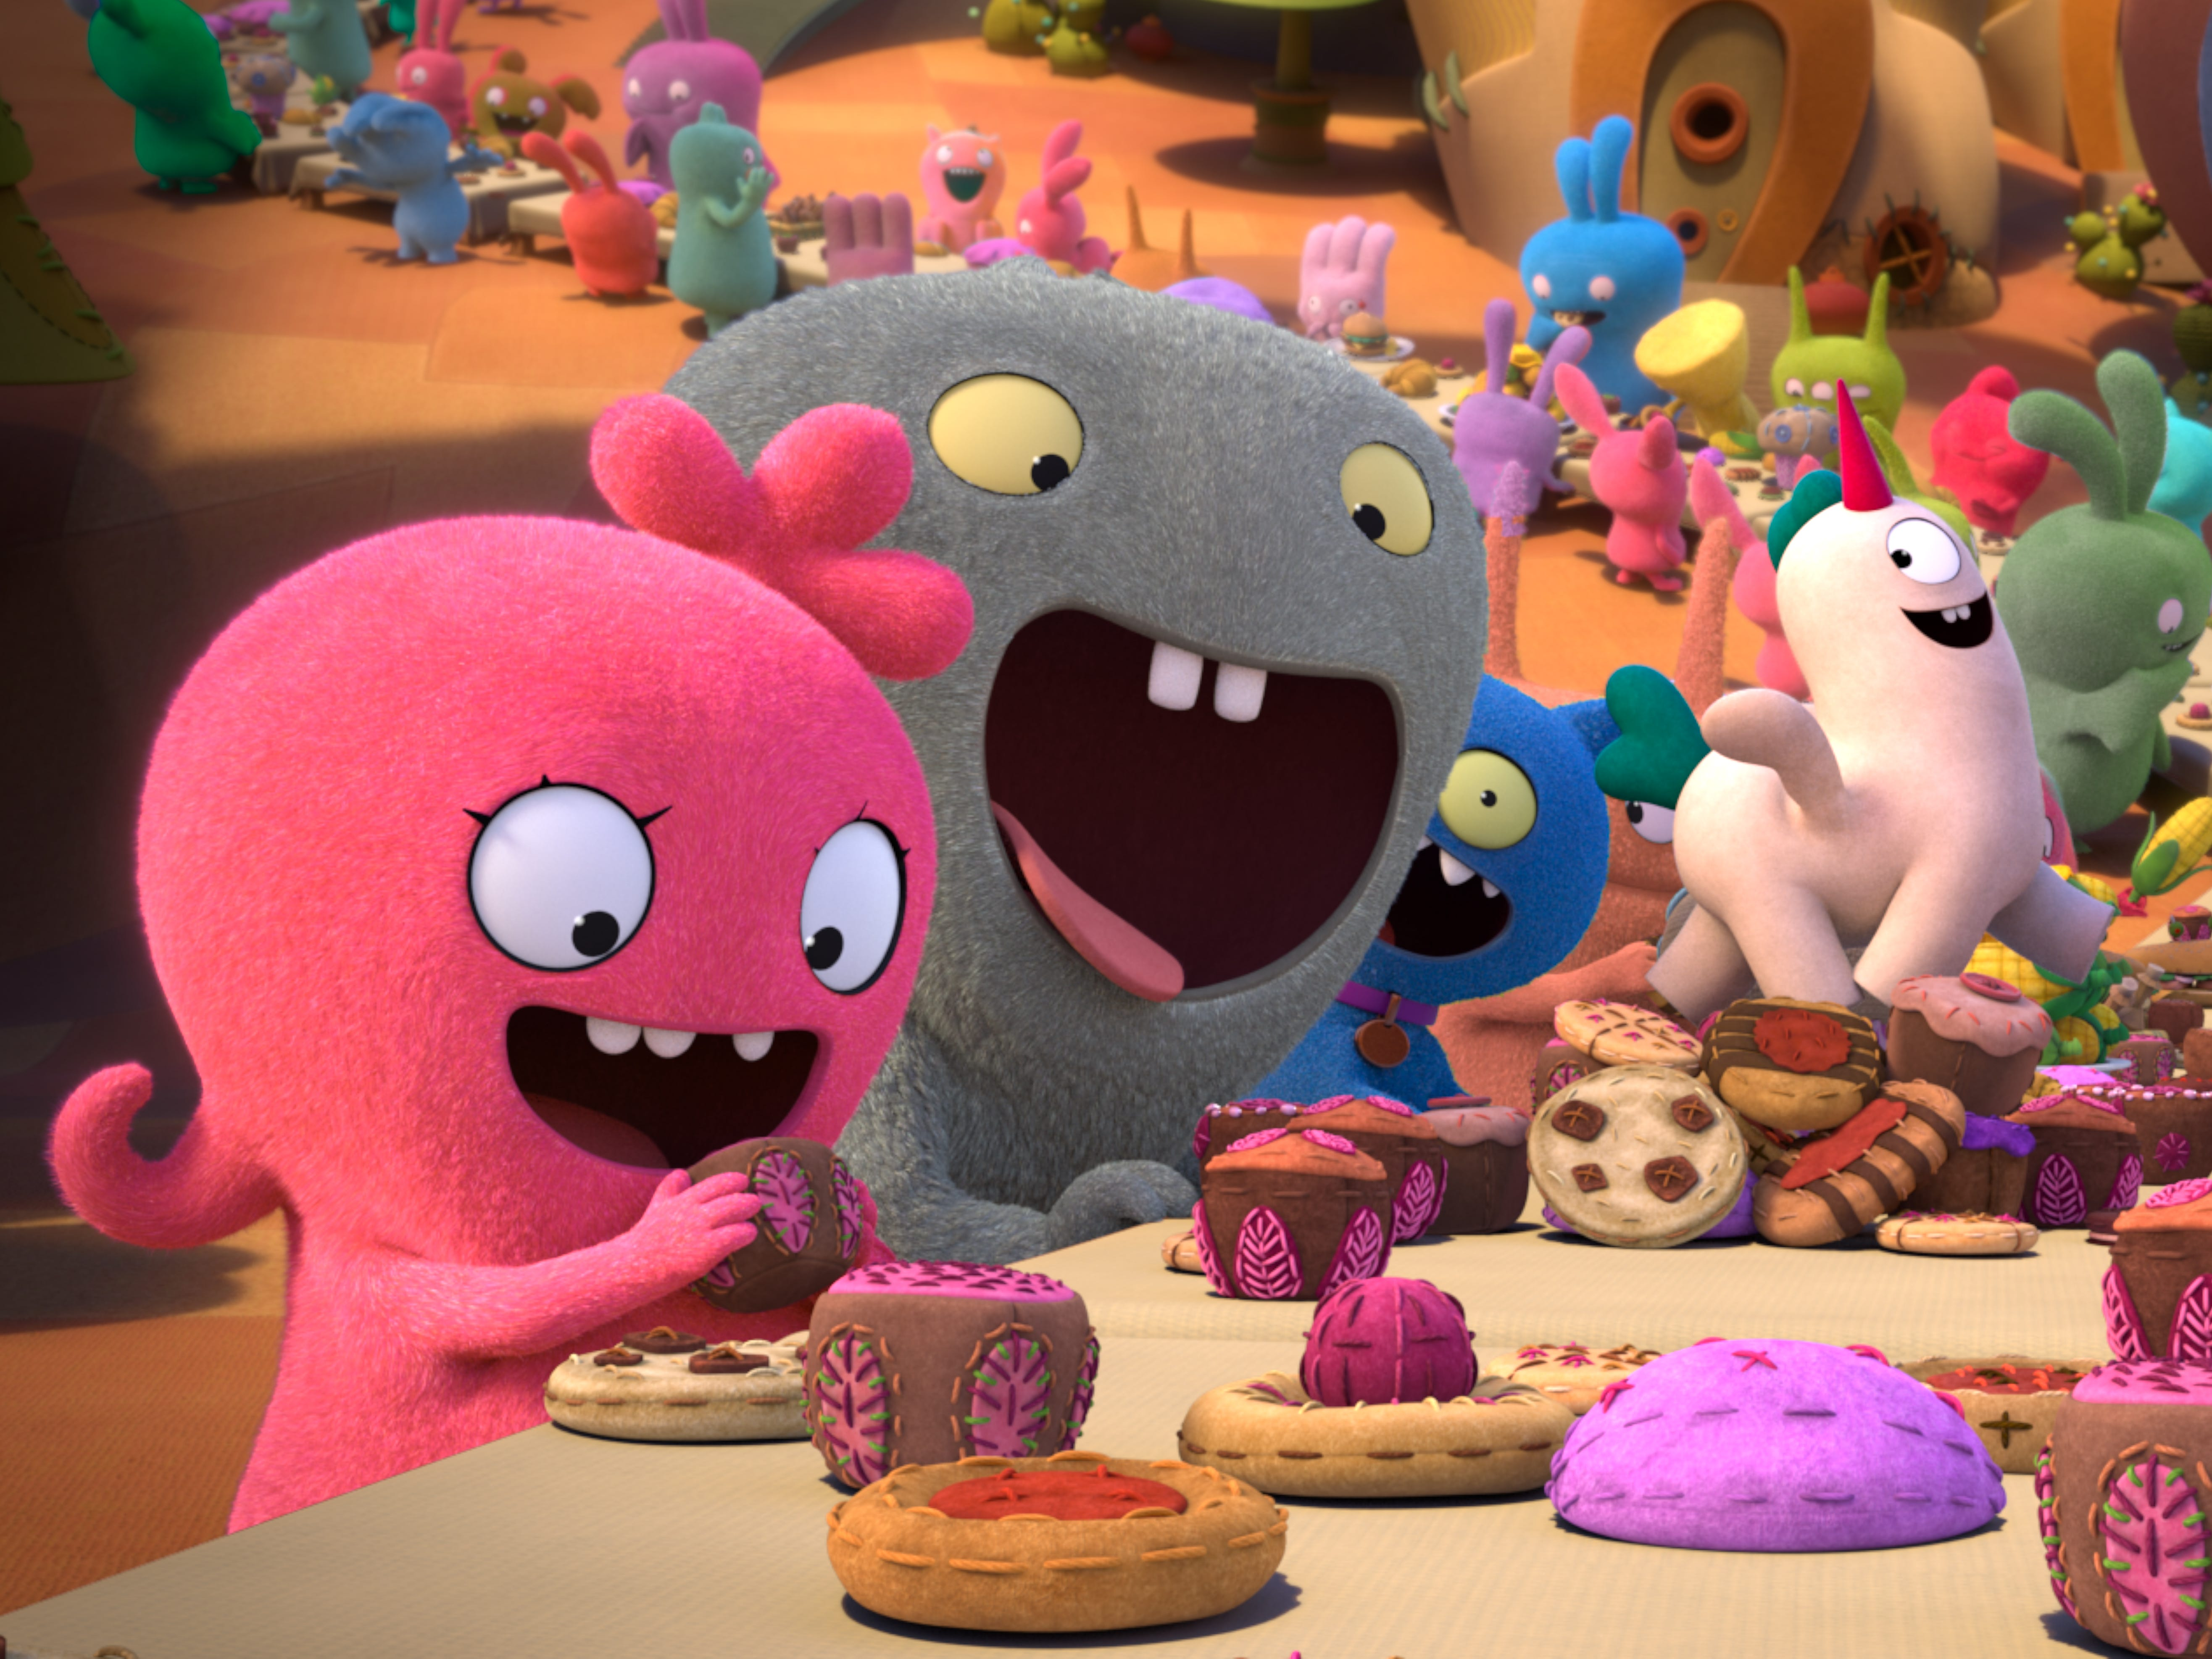 Moxy (pink, voiced by Kelly Clarkson), Babo (gray, voiced by Gabriel Iglesias) and Lucky Bat (red, voiced by Wang Leehom) enjoy a well-balanced meal of cookies and cake.